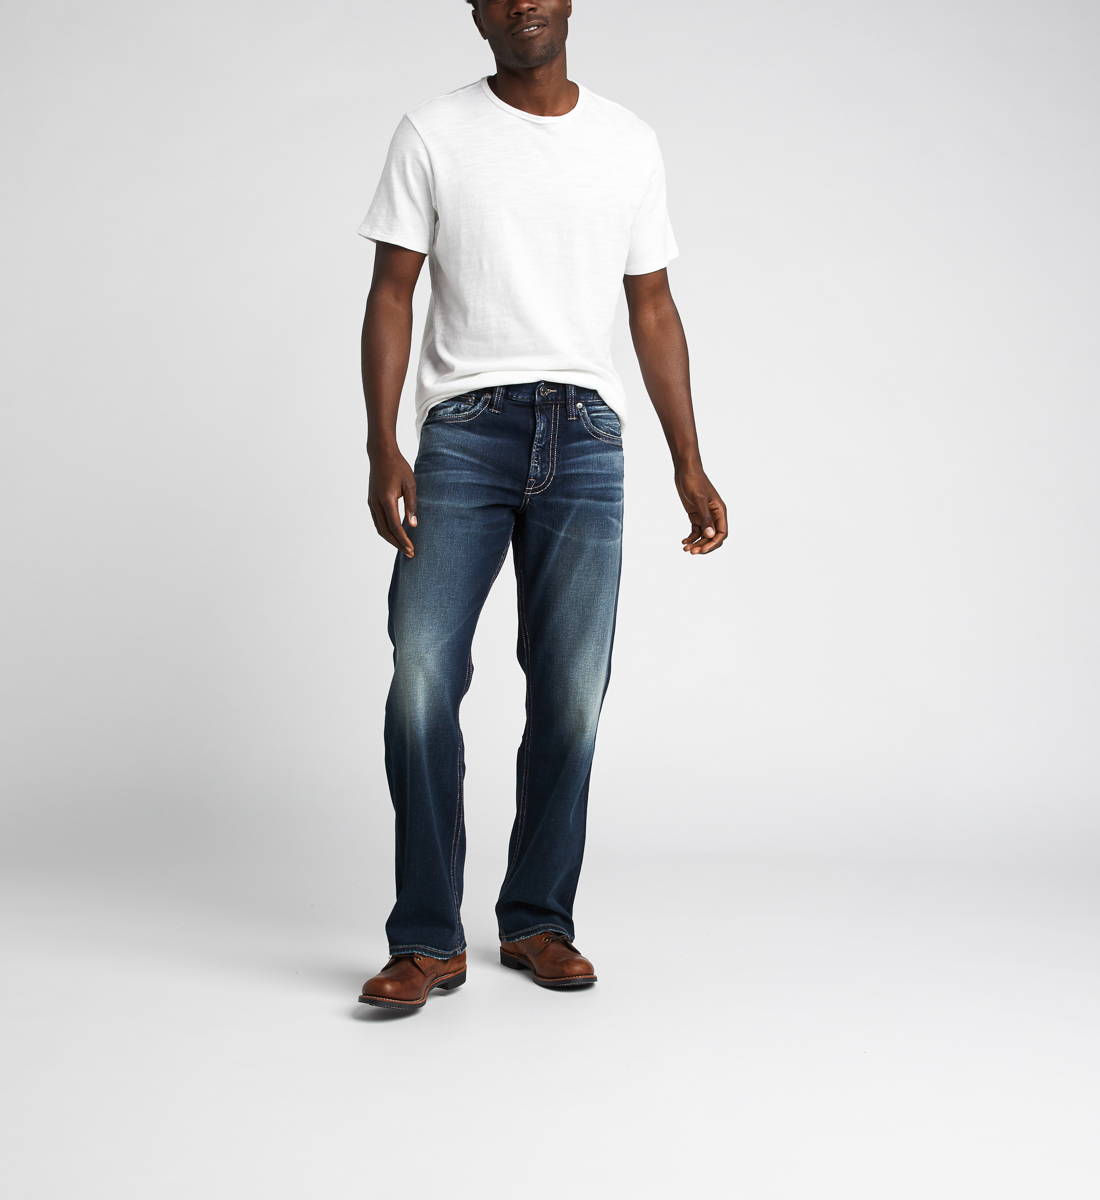 Zac Relaxed Fit Straight Jeans Alt Image 1